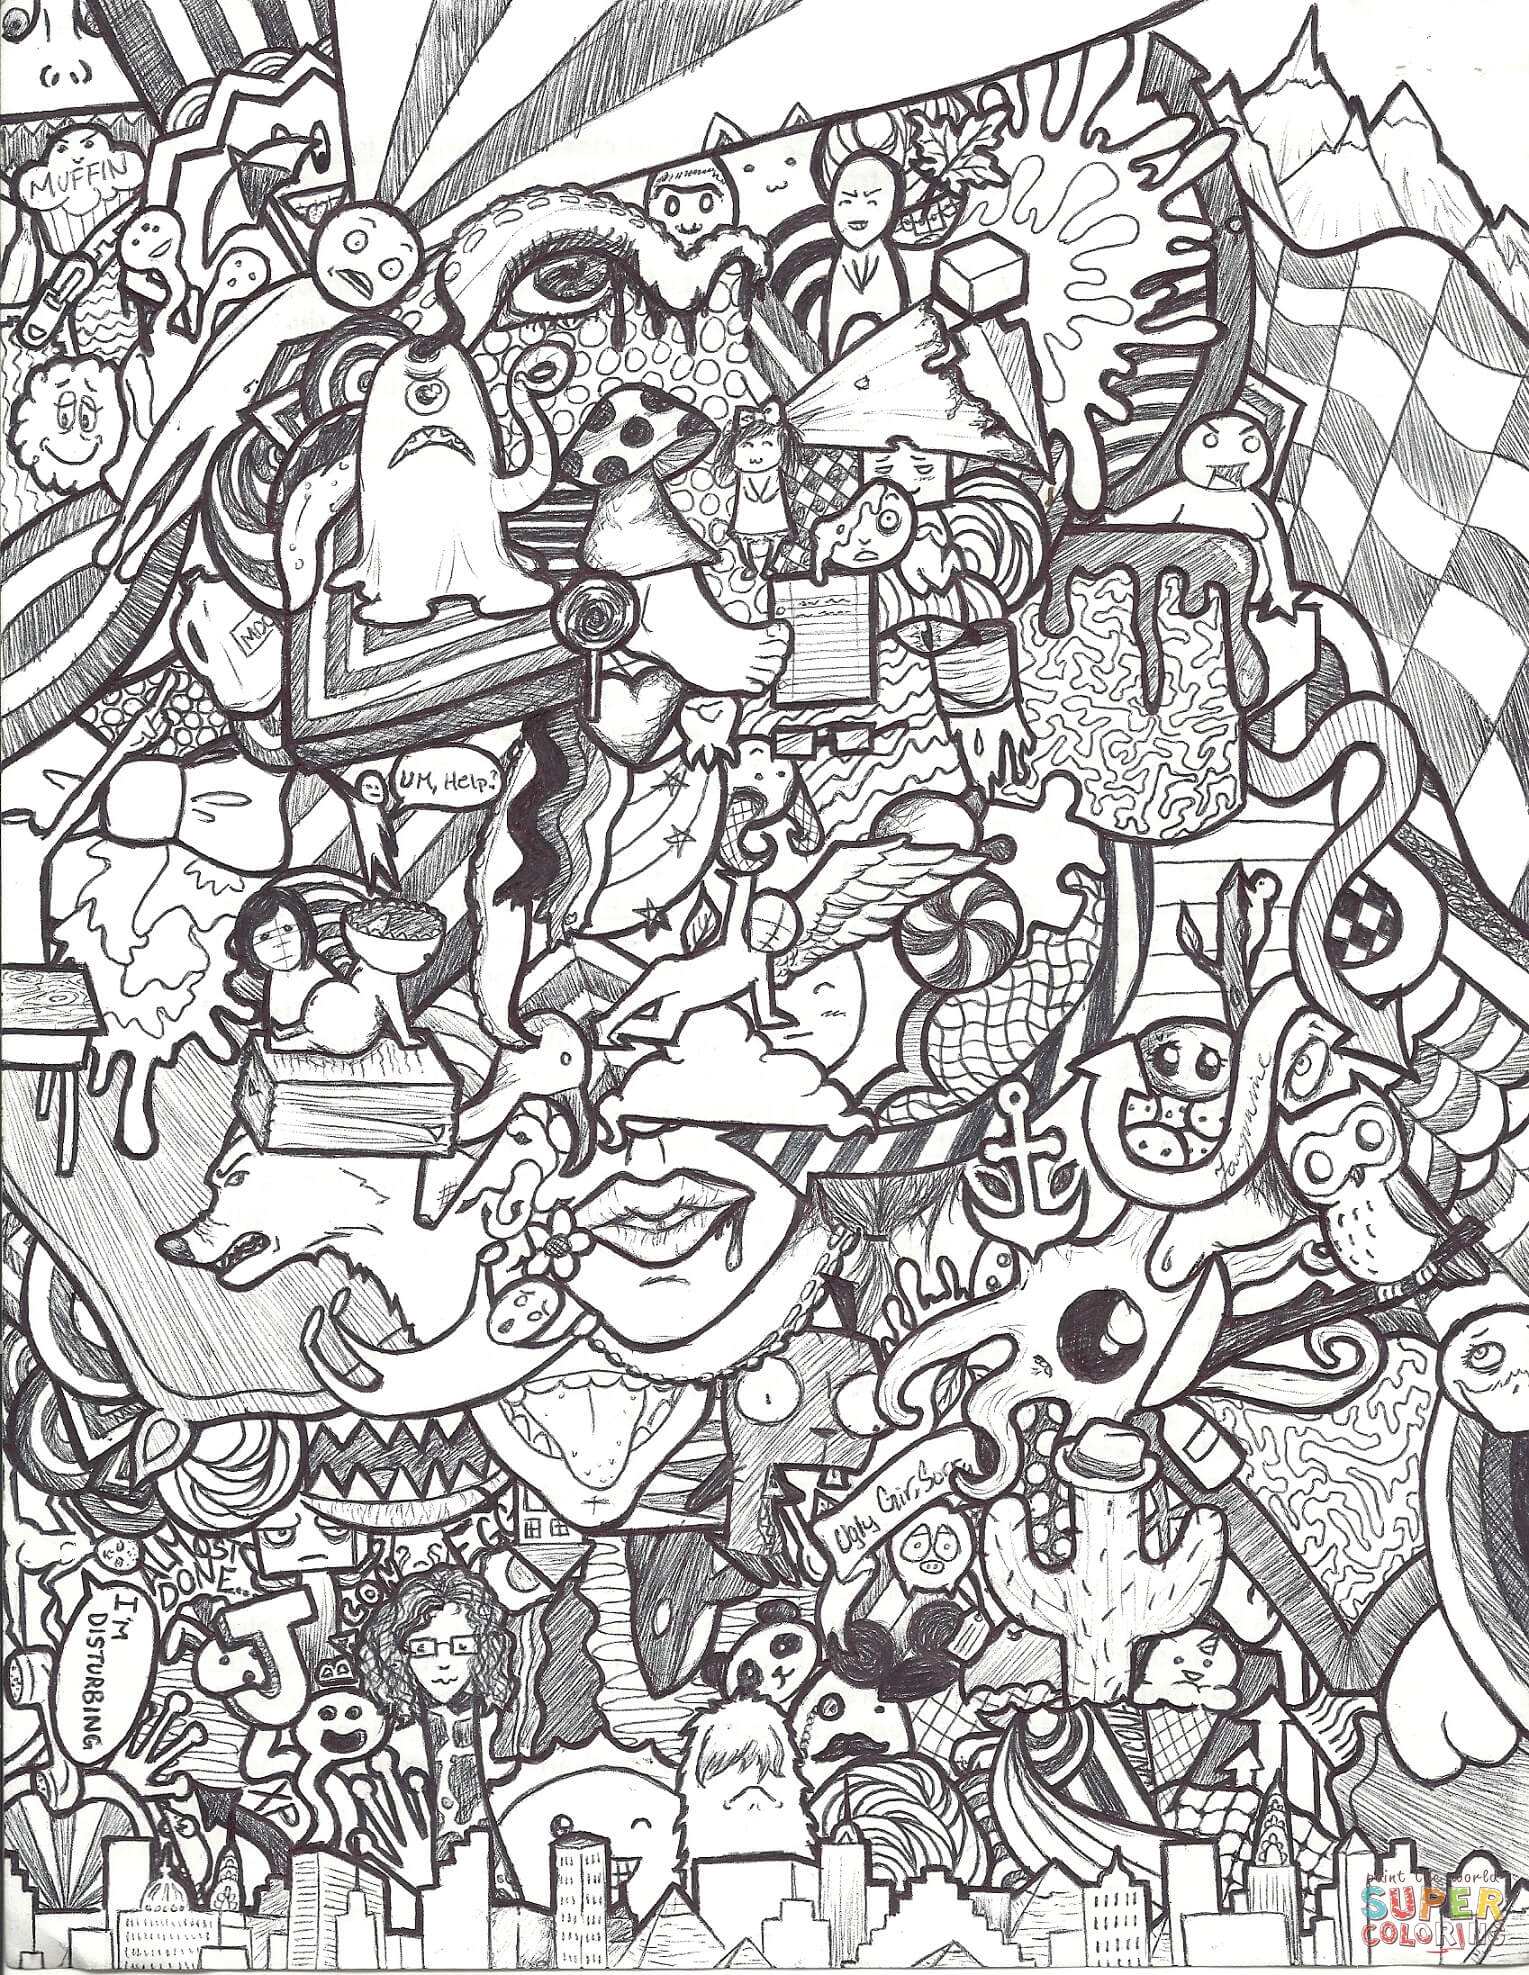 Doodle Collagejazzy Coloring Page | Free Printable Coloring Pages - Free Printable Doodle Patterns